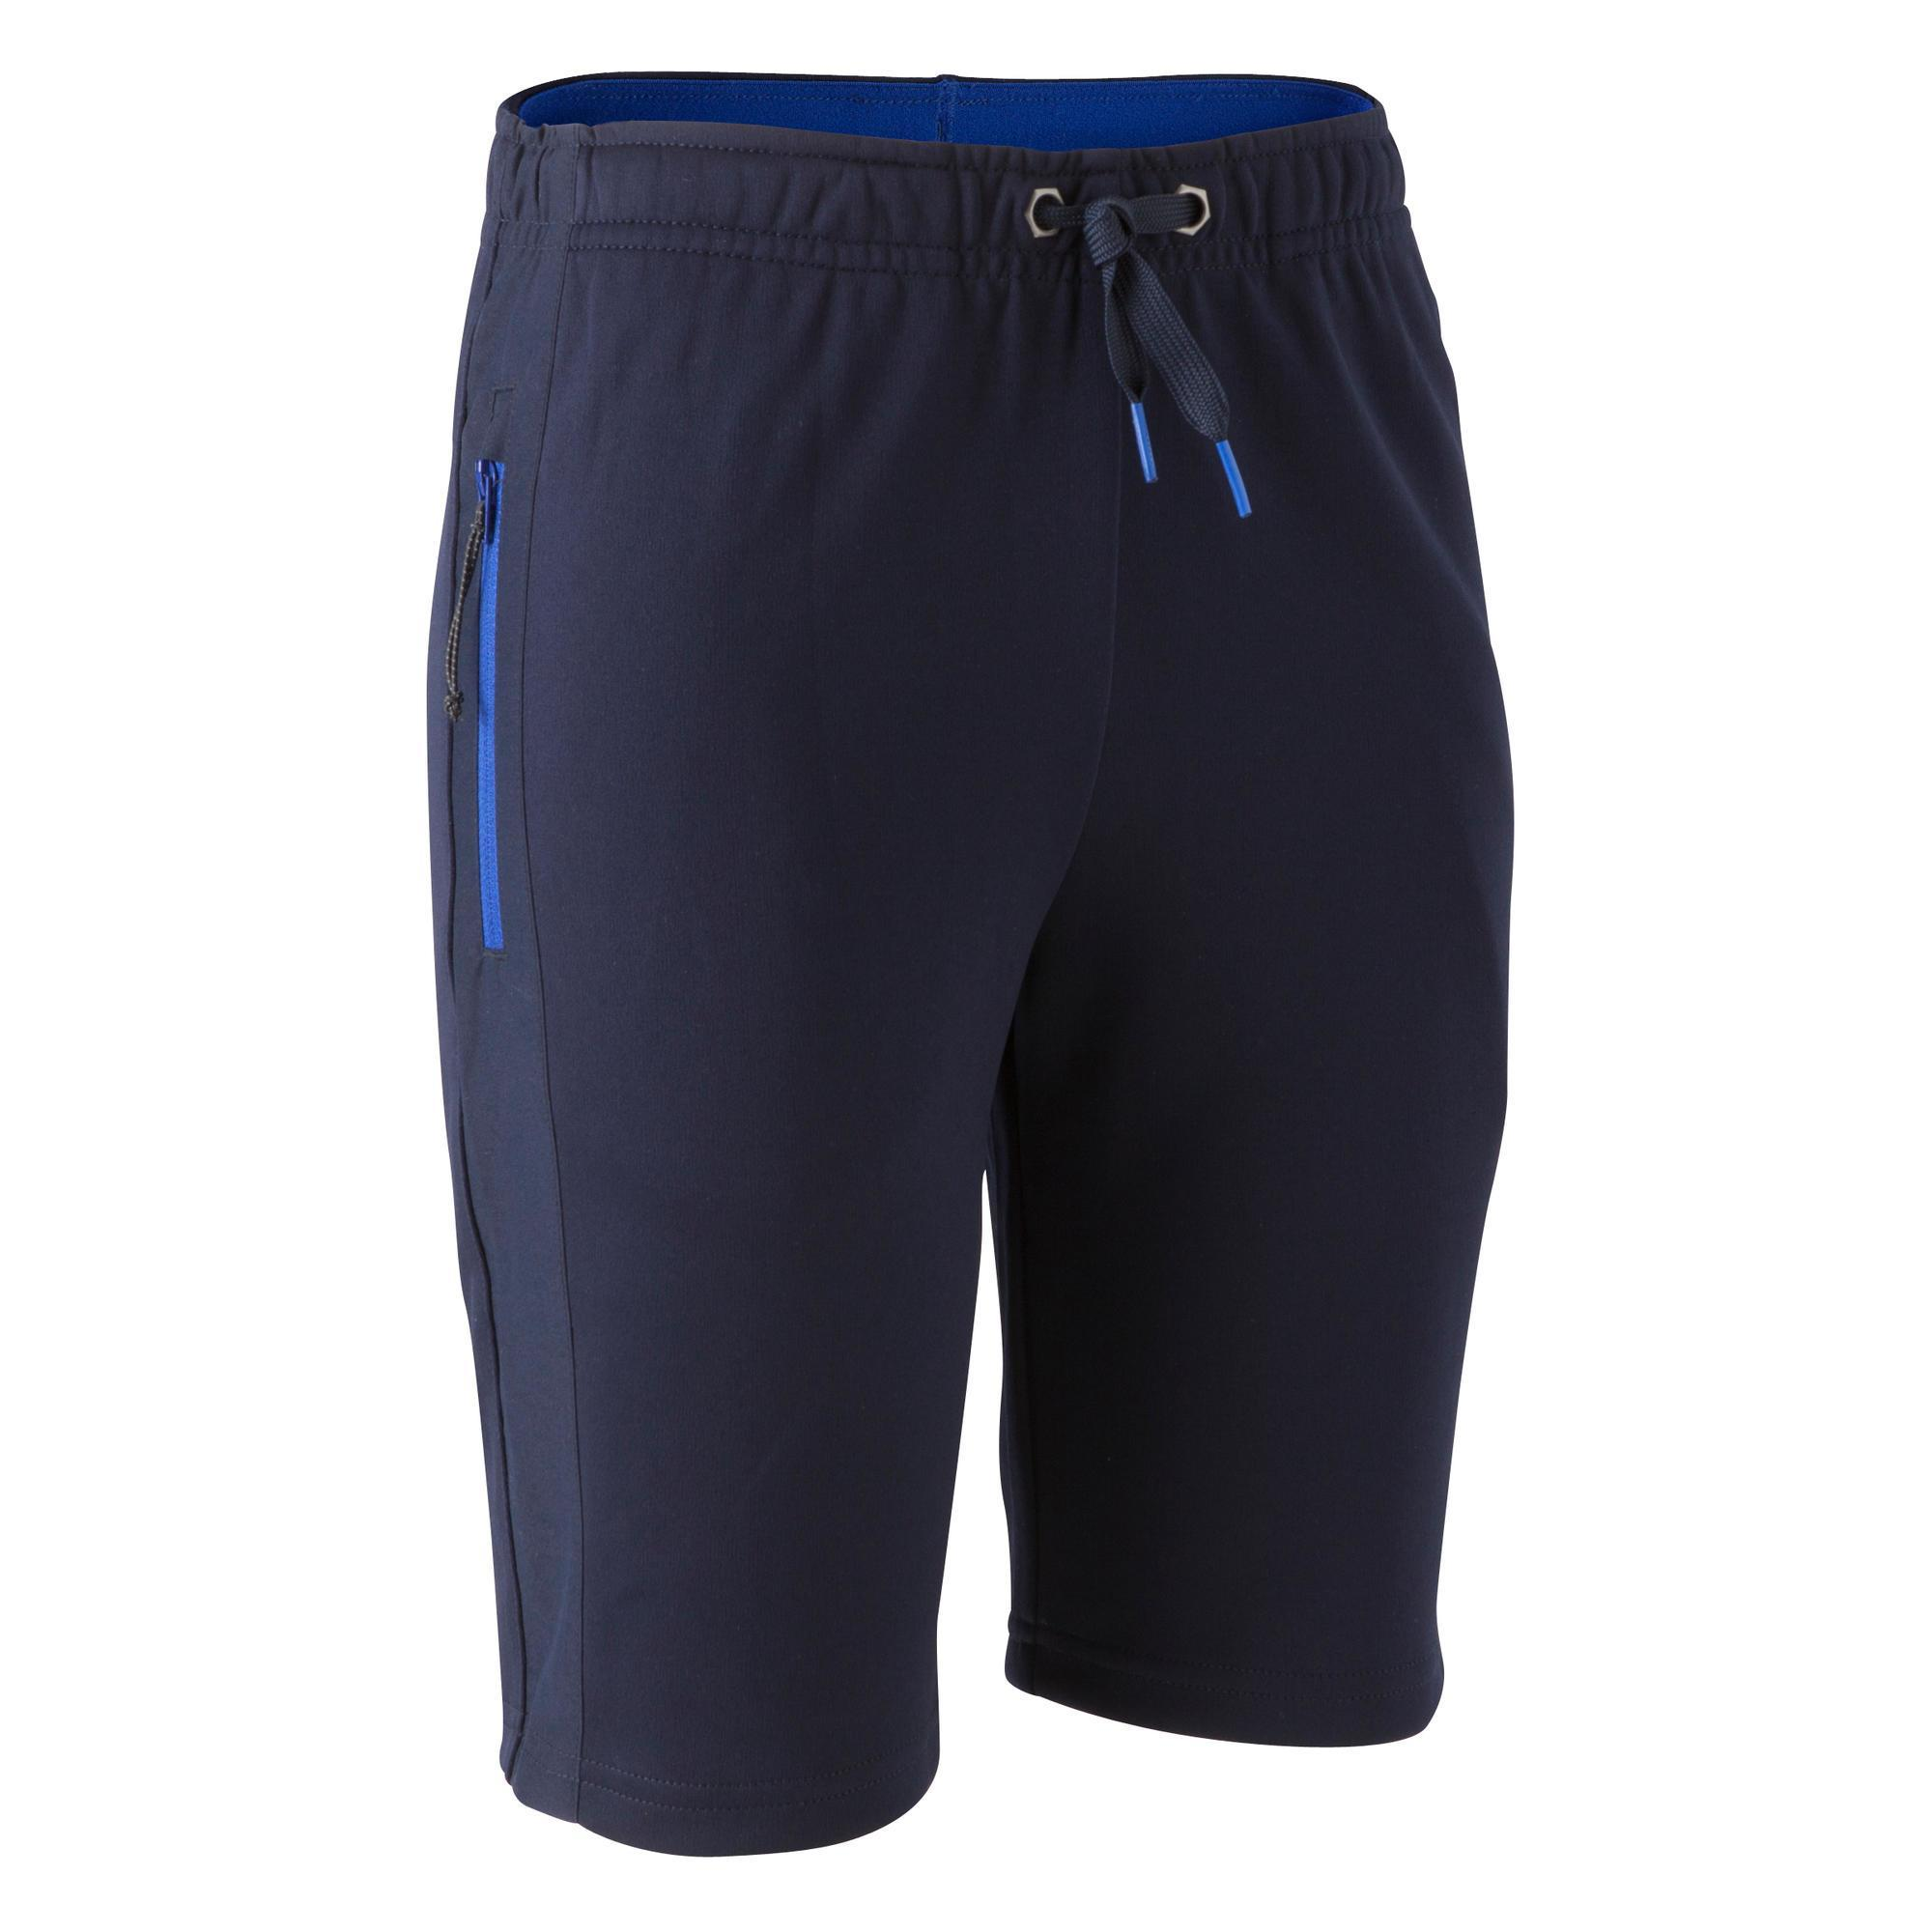 Short long dentraînement enfant t500 marine kipsta